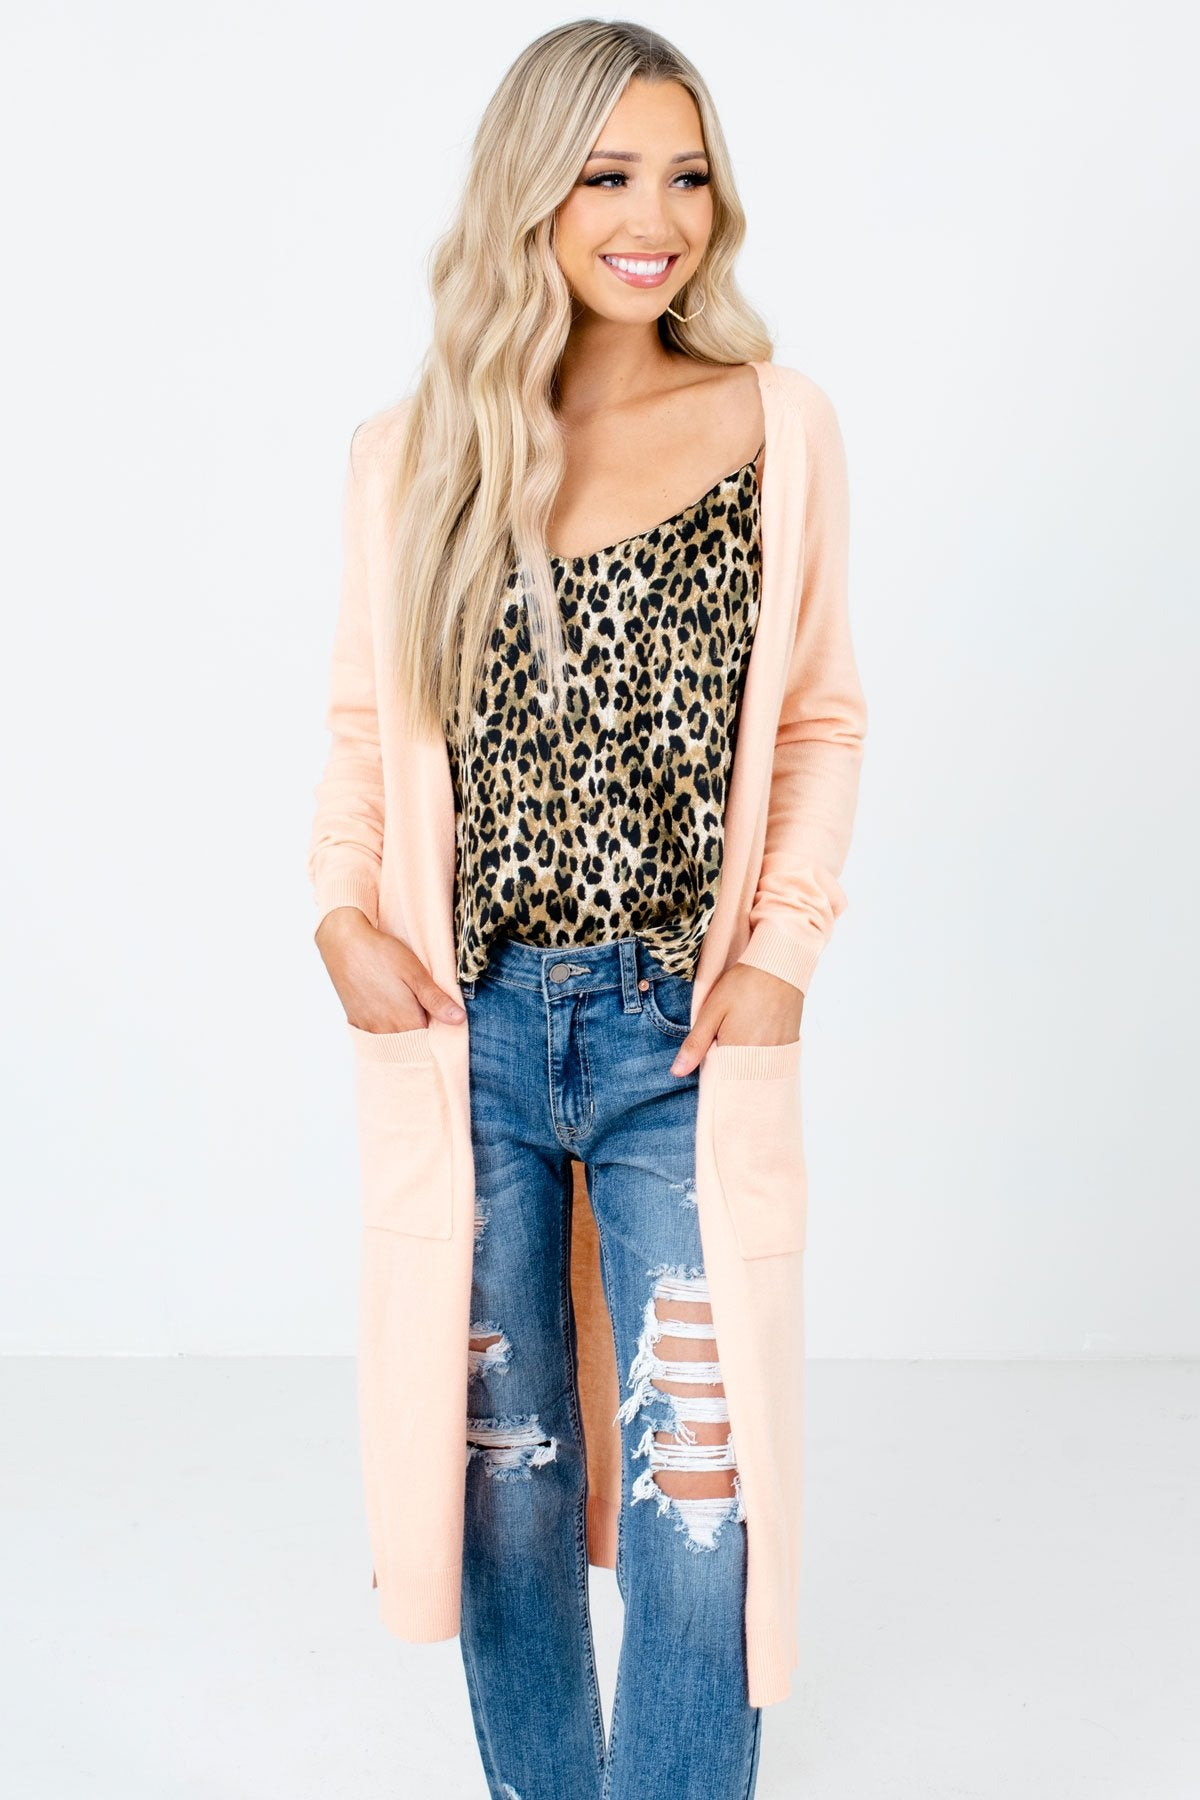 Peach Pink Long Length Boutique Cardigans for Women